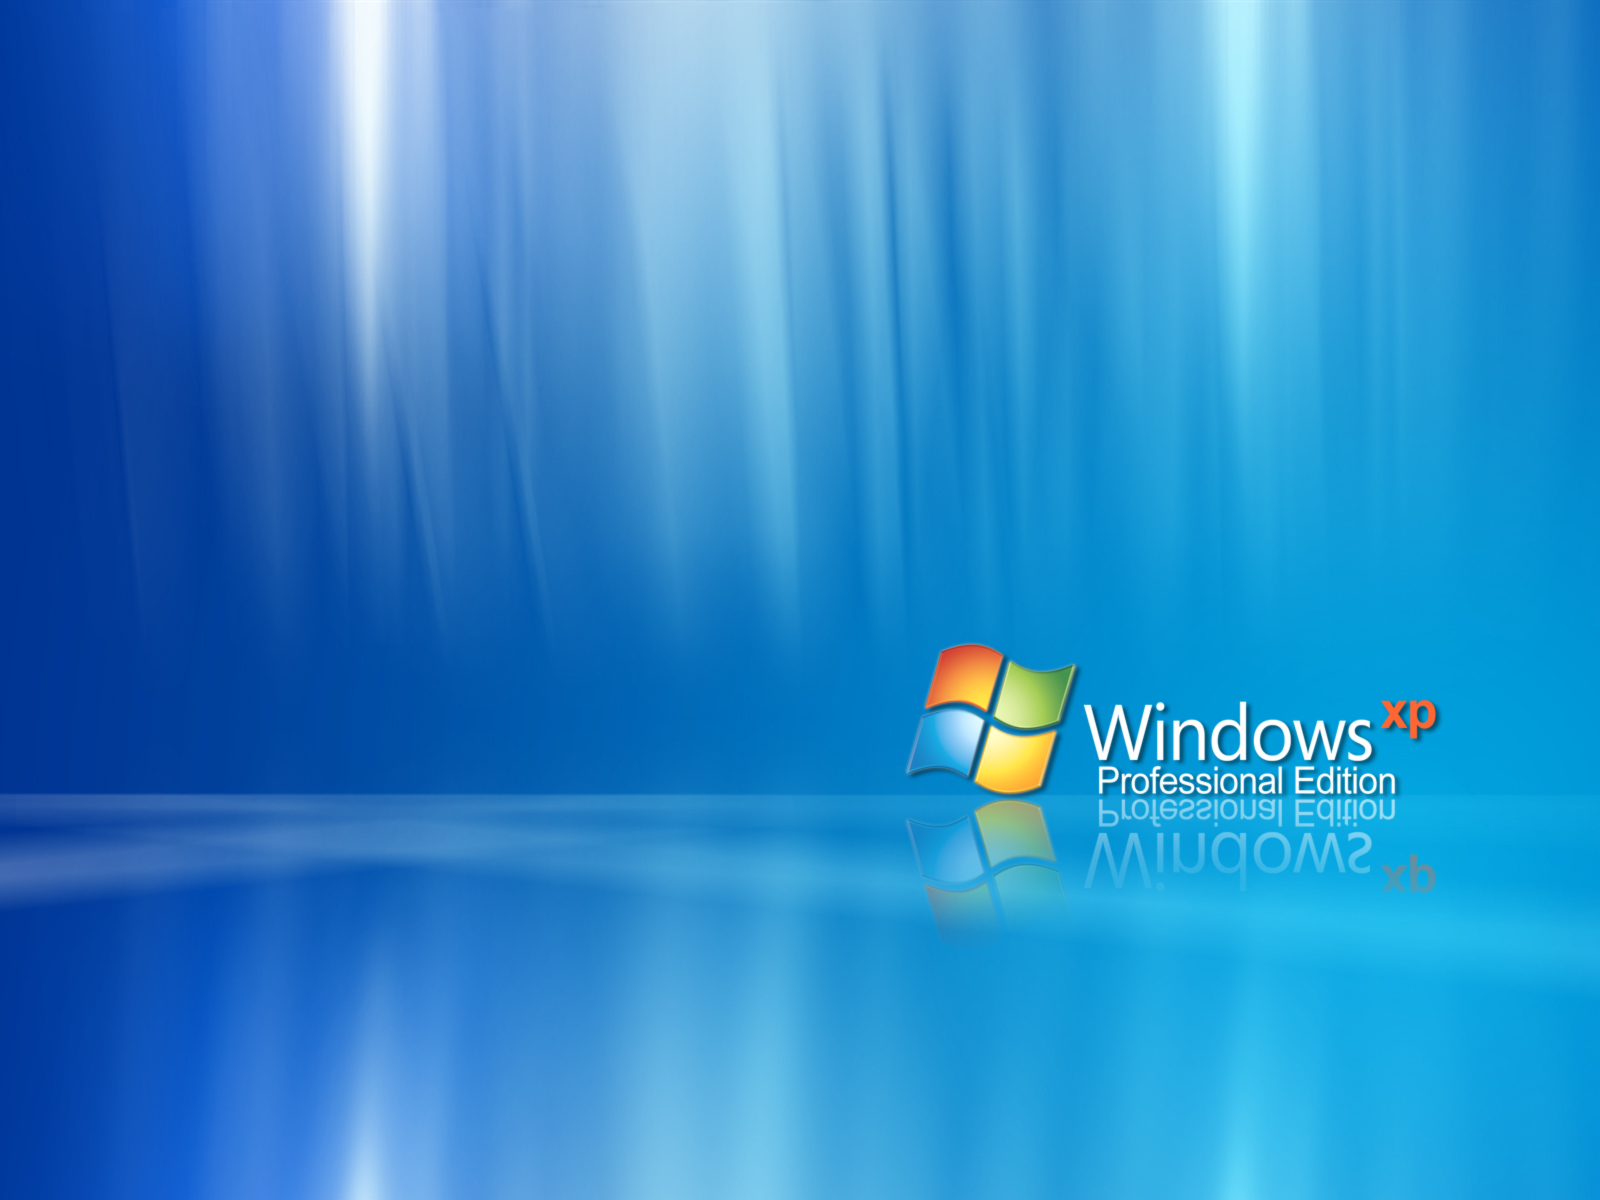 Windows_XP_Pro_screen-1600x1200